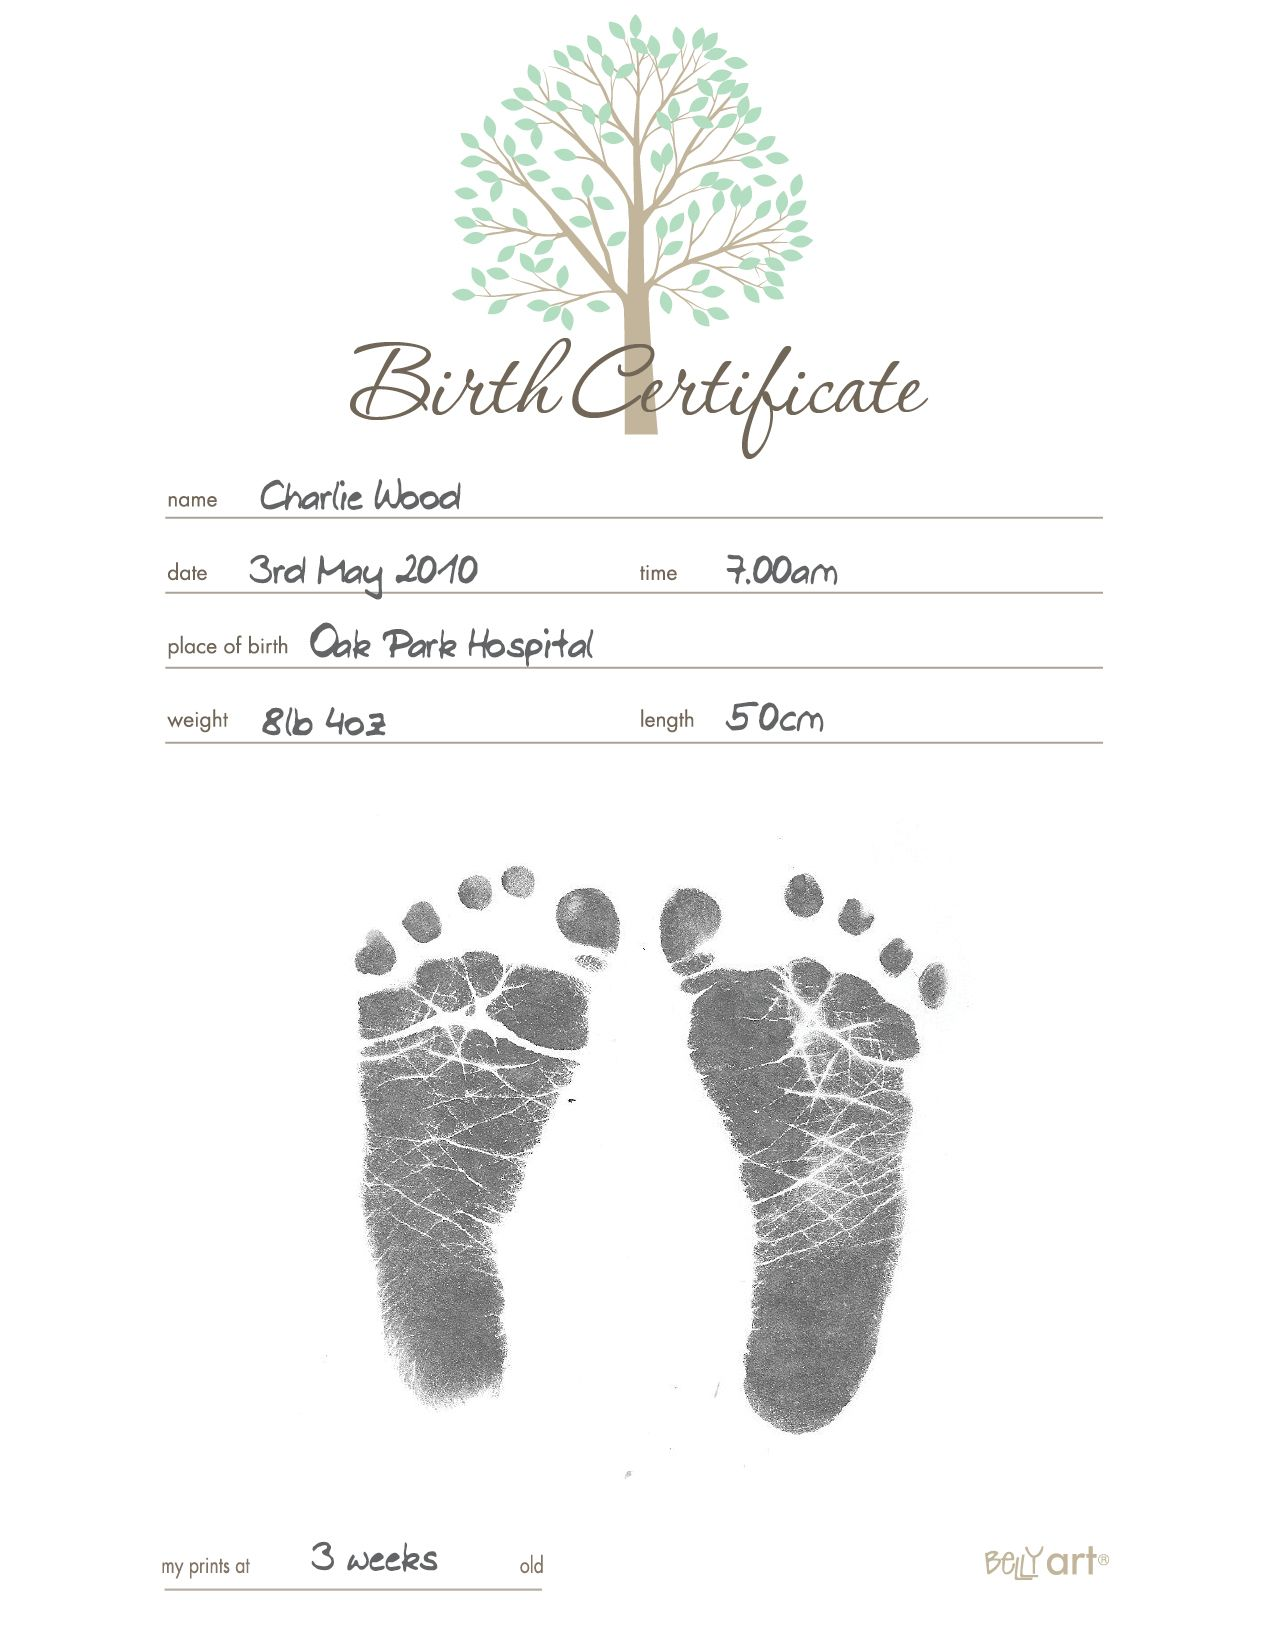 Belly art inkless birth certificate apostille birth certificate belly art inkless birth certificate aiddatafo Choice Image